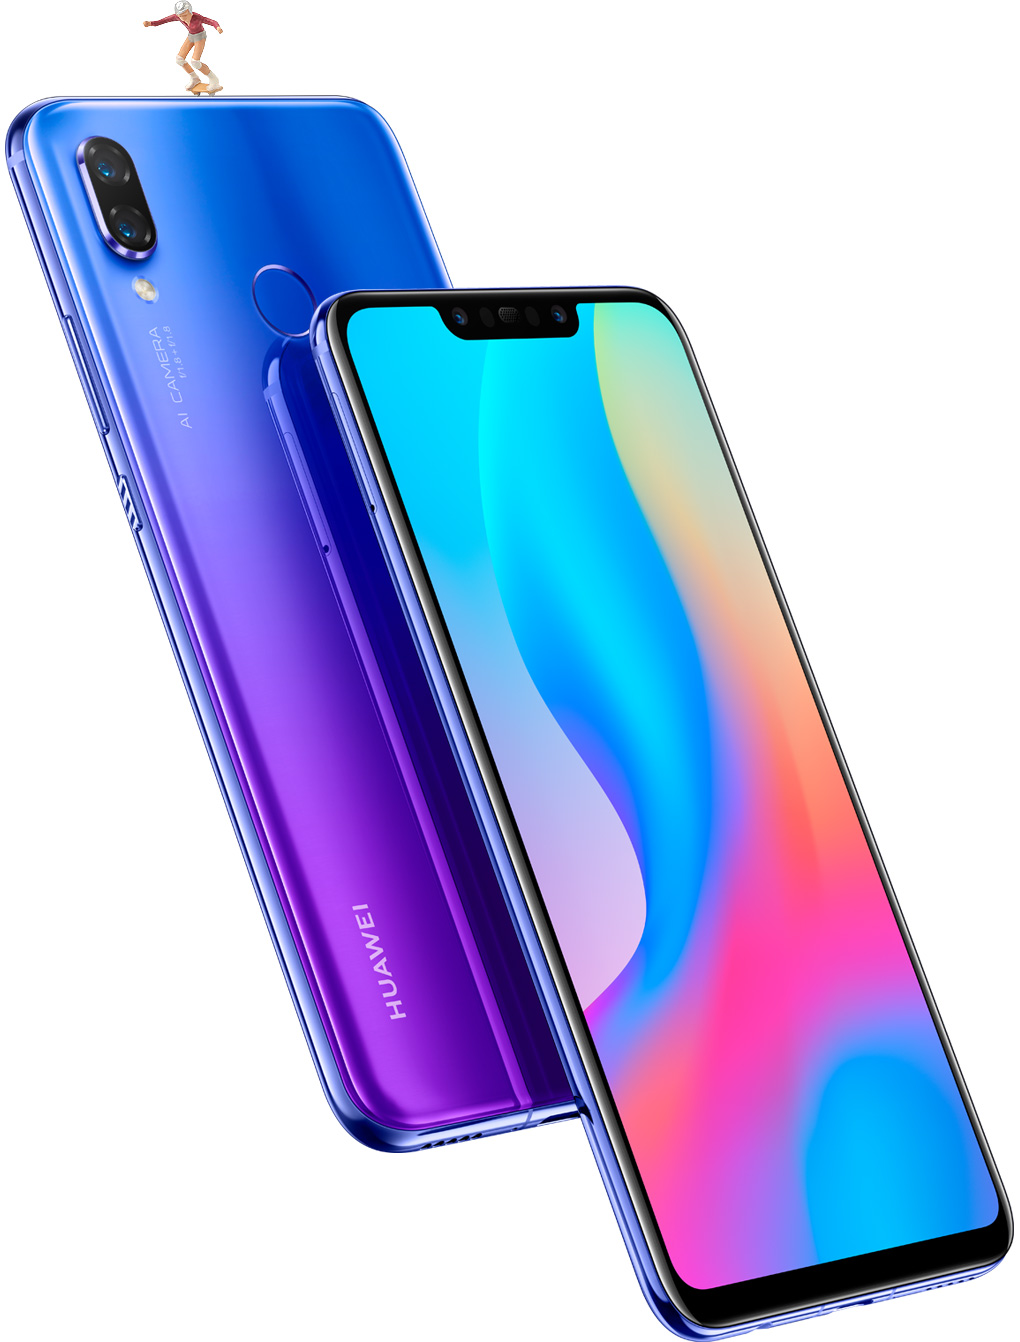 Huawei Nova 3 and Nova 3i Now Available for Sale in Pakistan: Price and Specifications